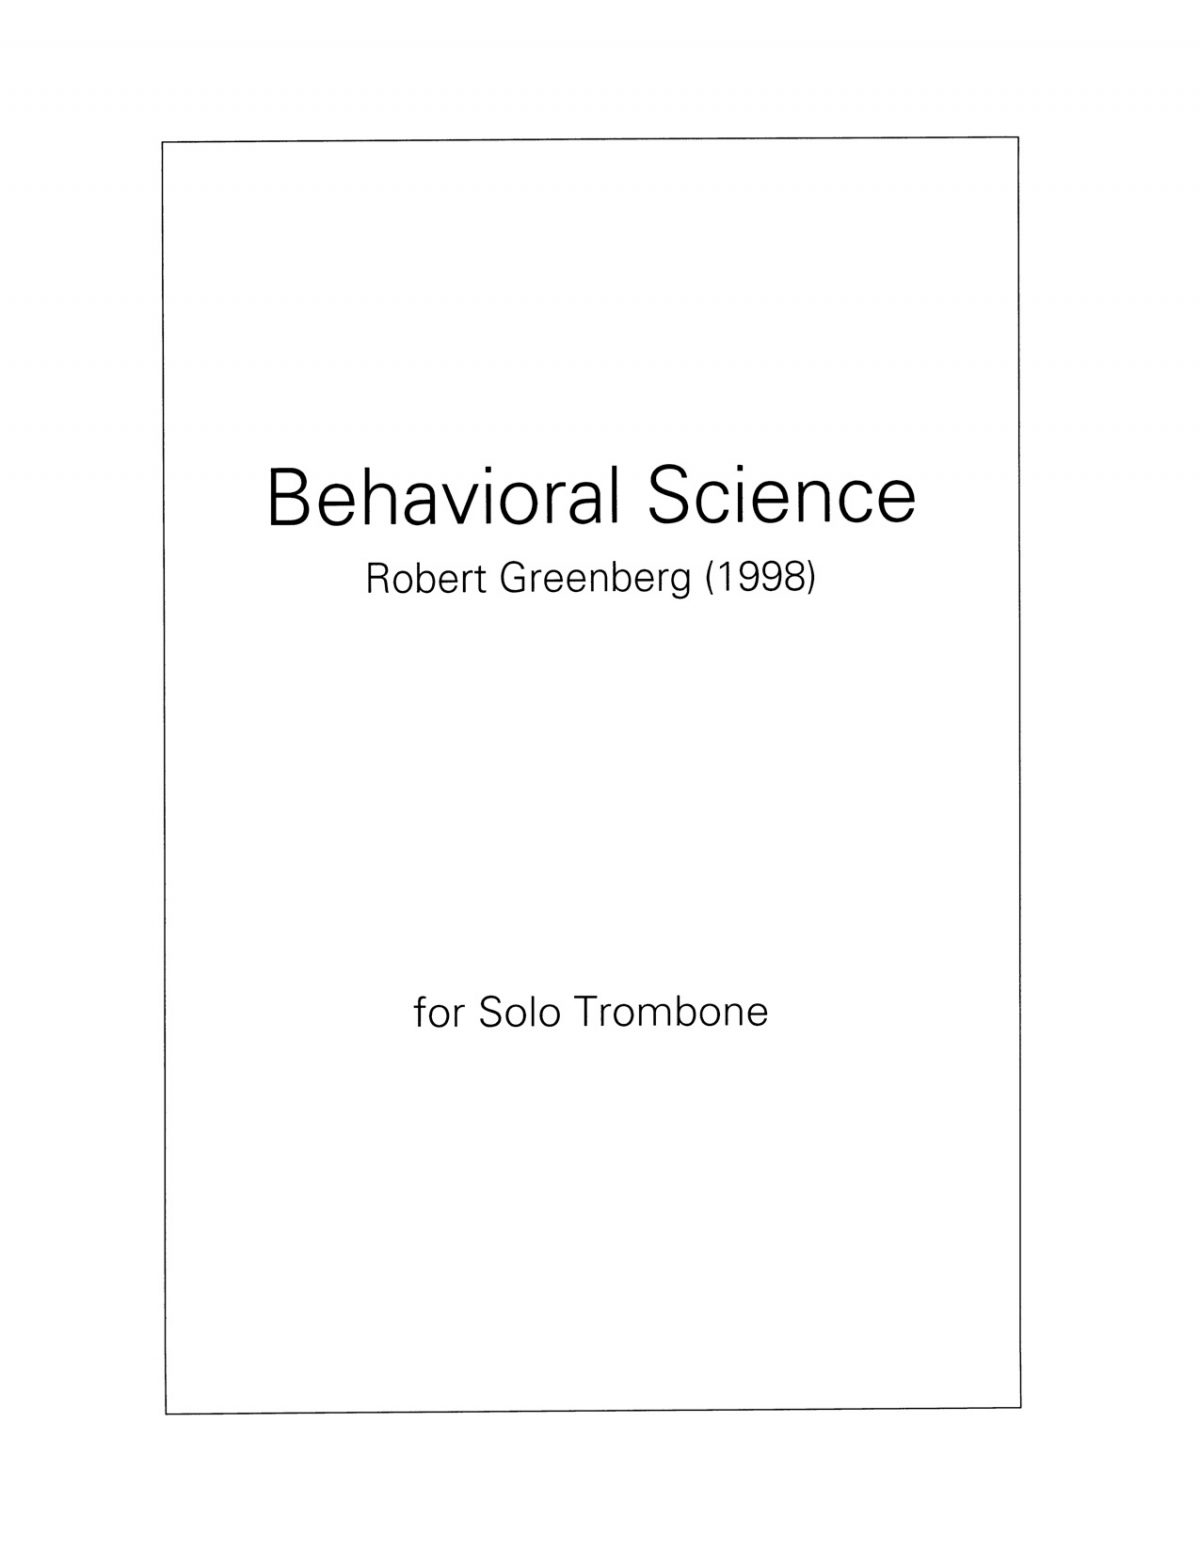 Behavioral Science for Trombone Solo